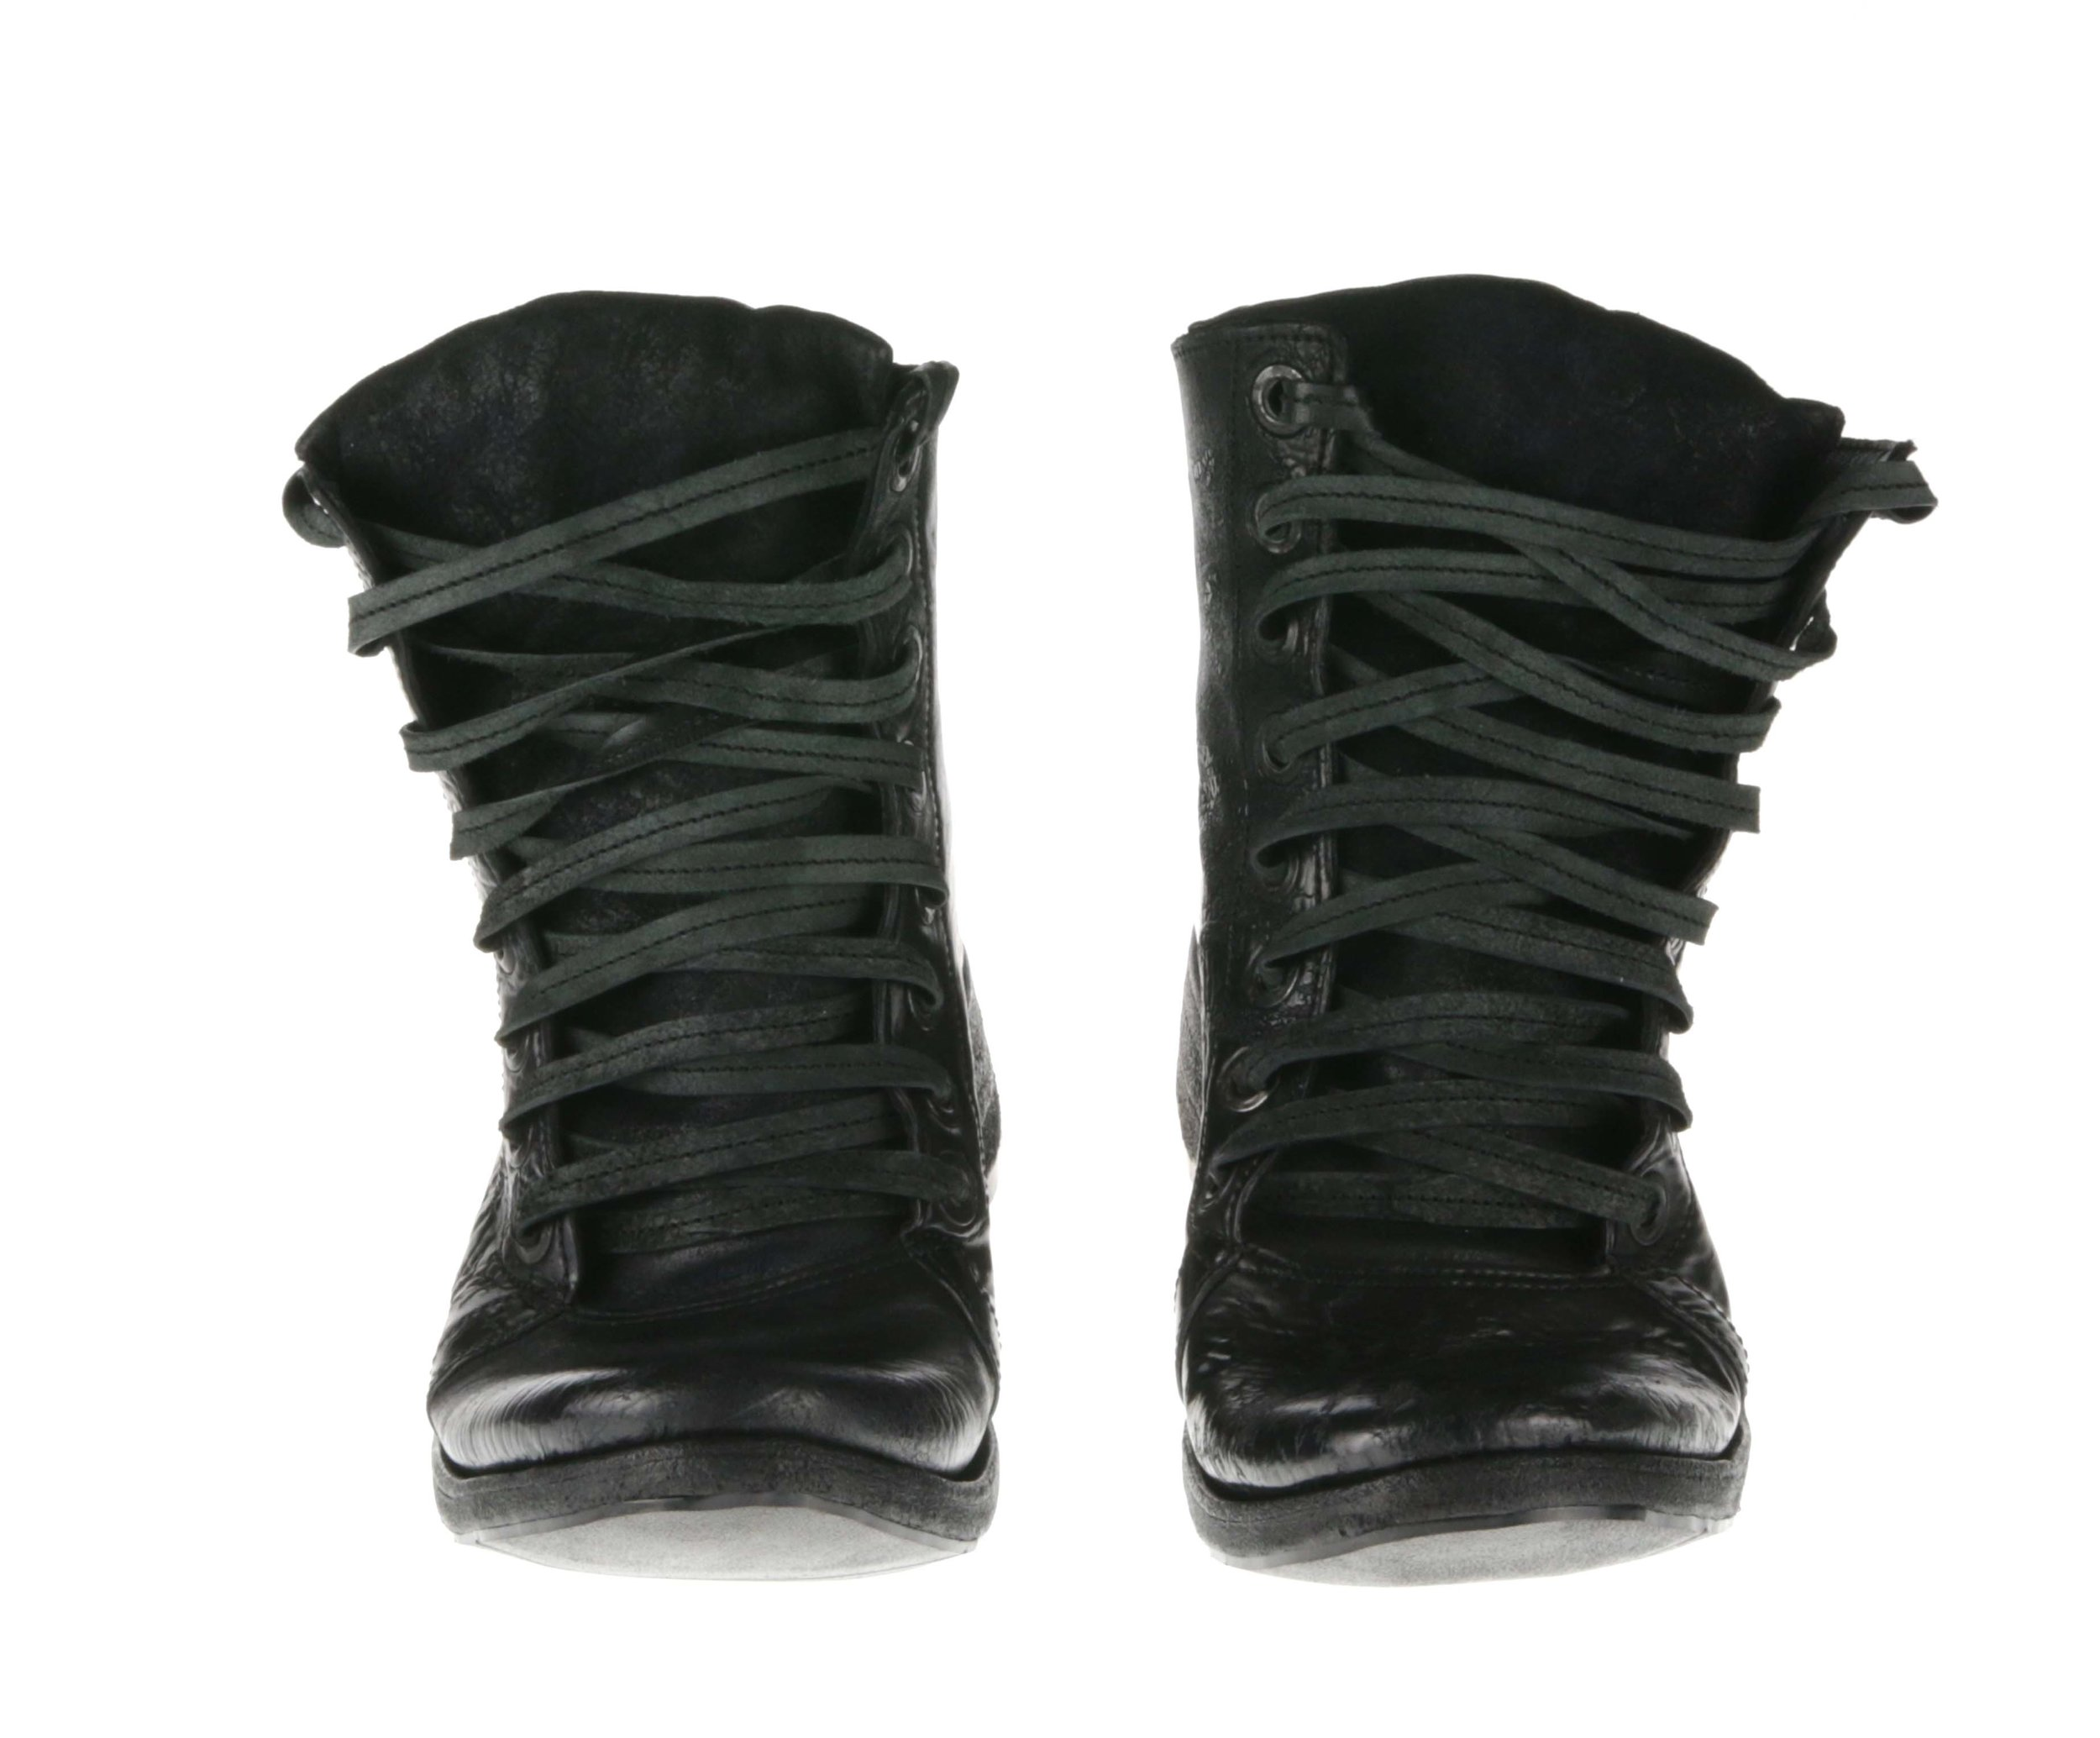 8Hole Boots Black Culatta Double Front.jpg